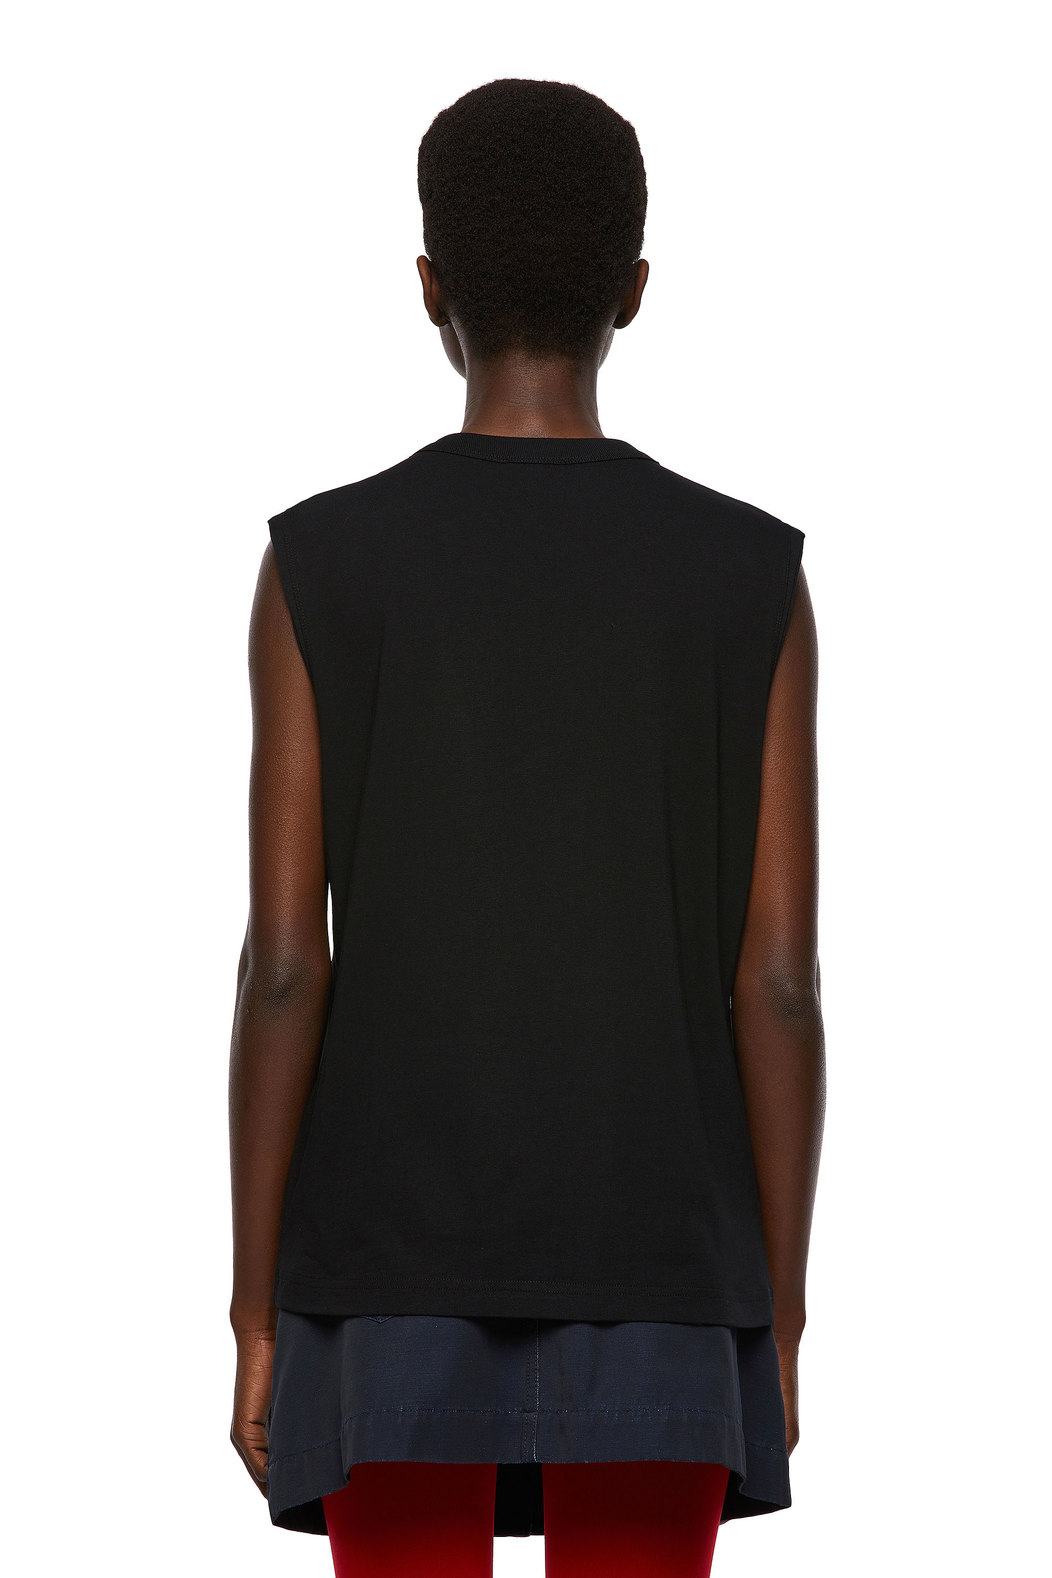 Green Label tank top with photo print